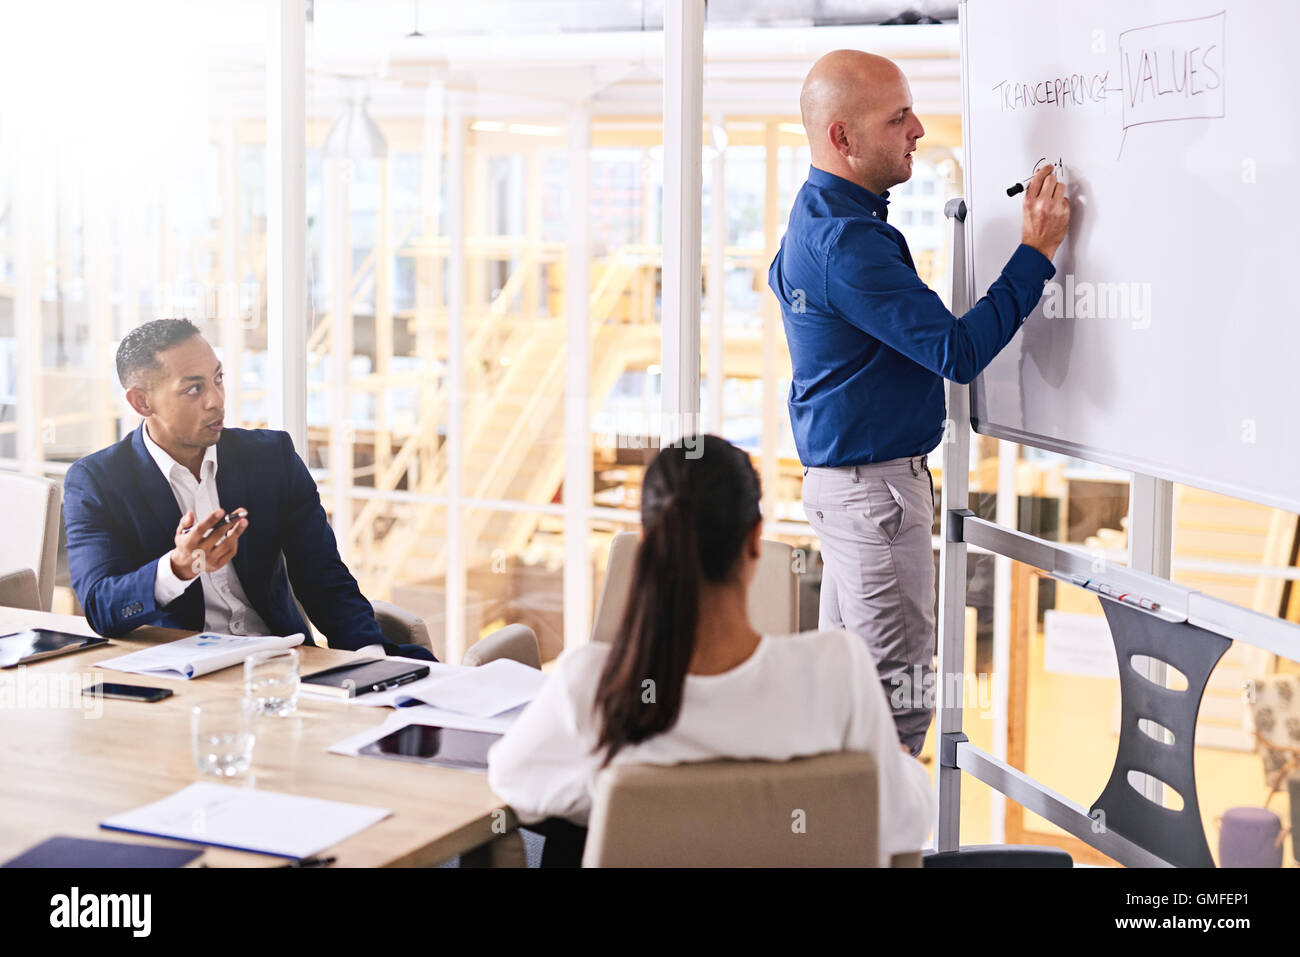 Young caucasian businessman writing company values on white board - Stock Image